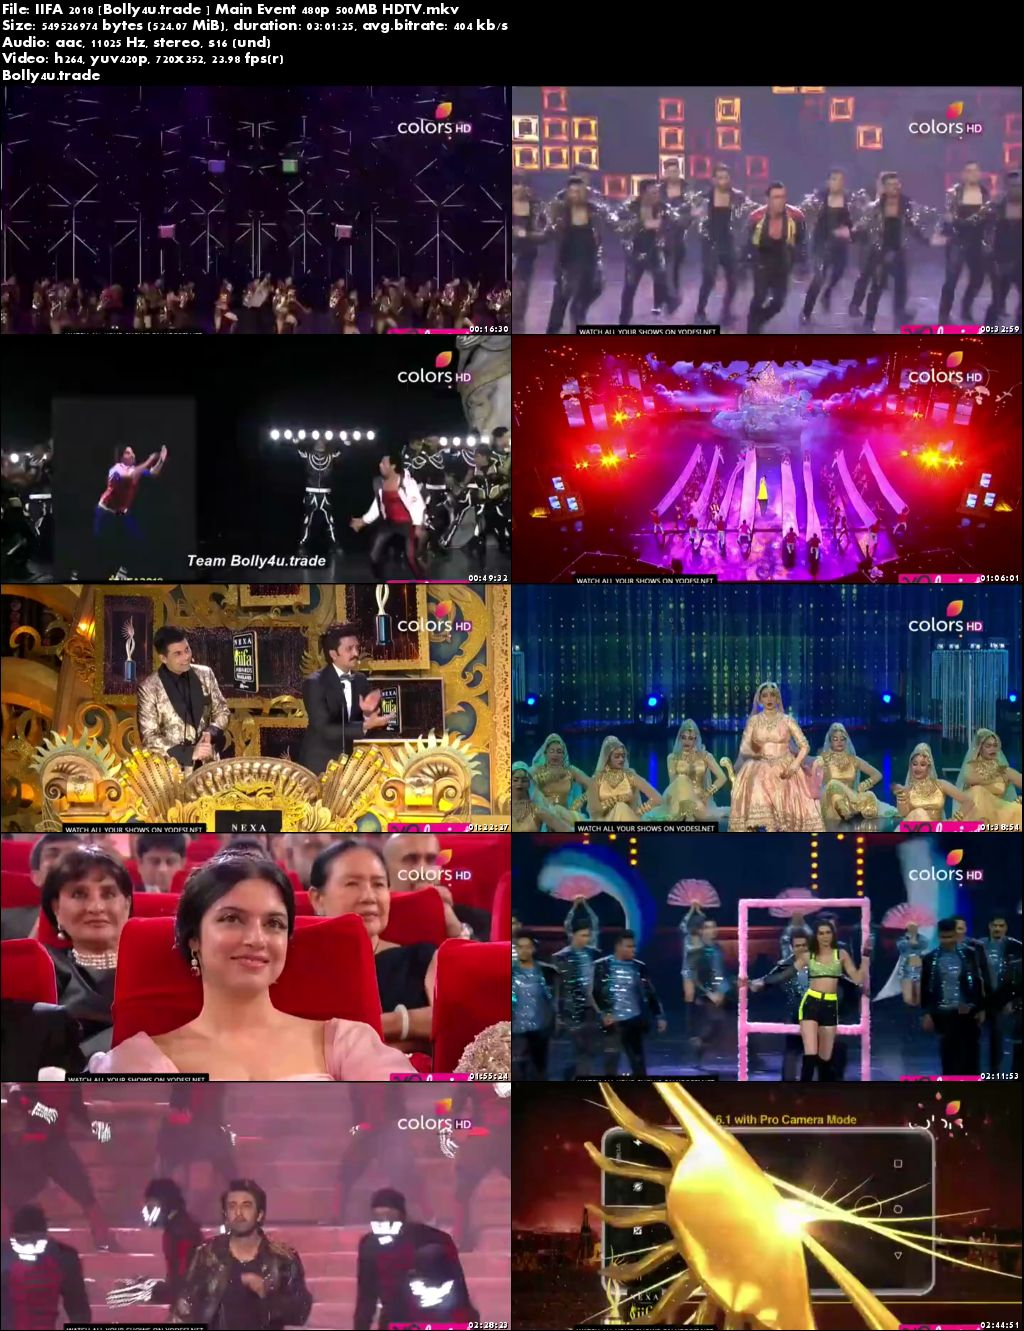 IIFA 2018 HDTV 500MB 480p Main Event Download